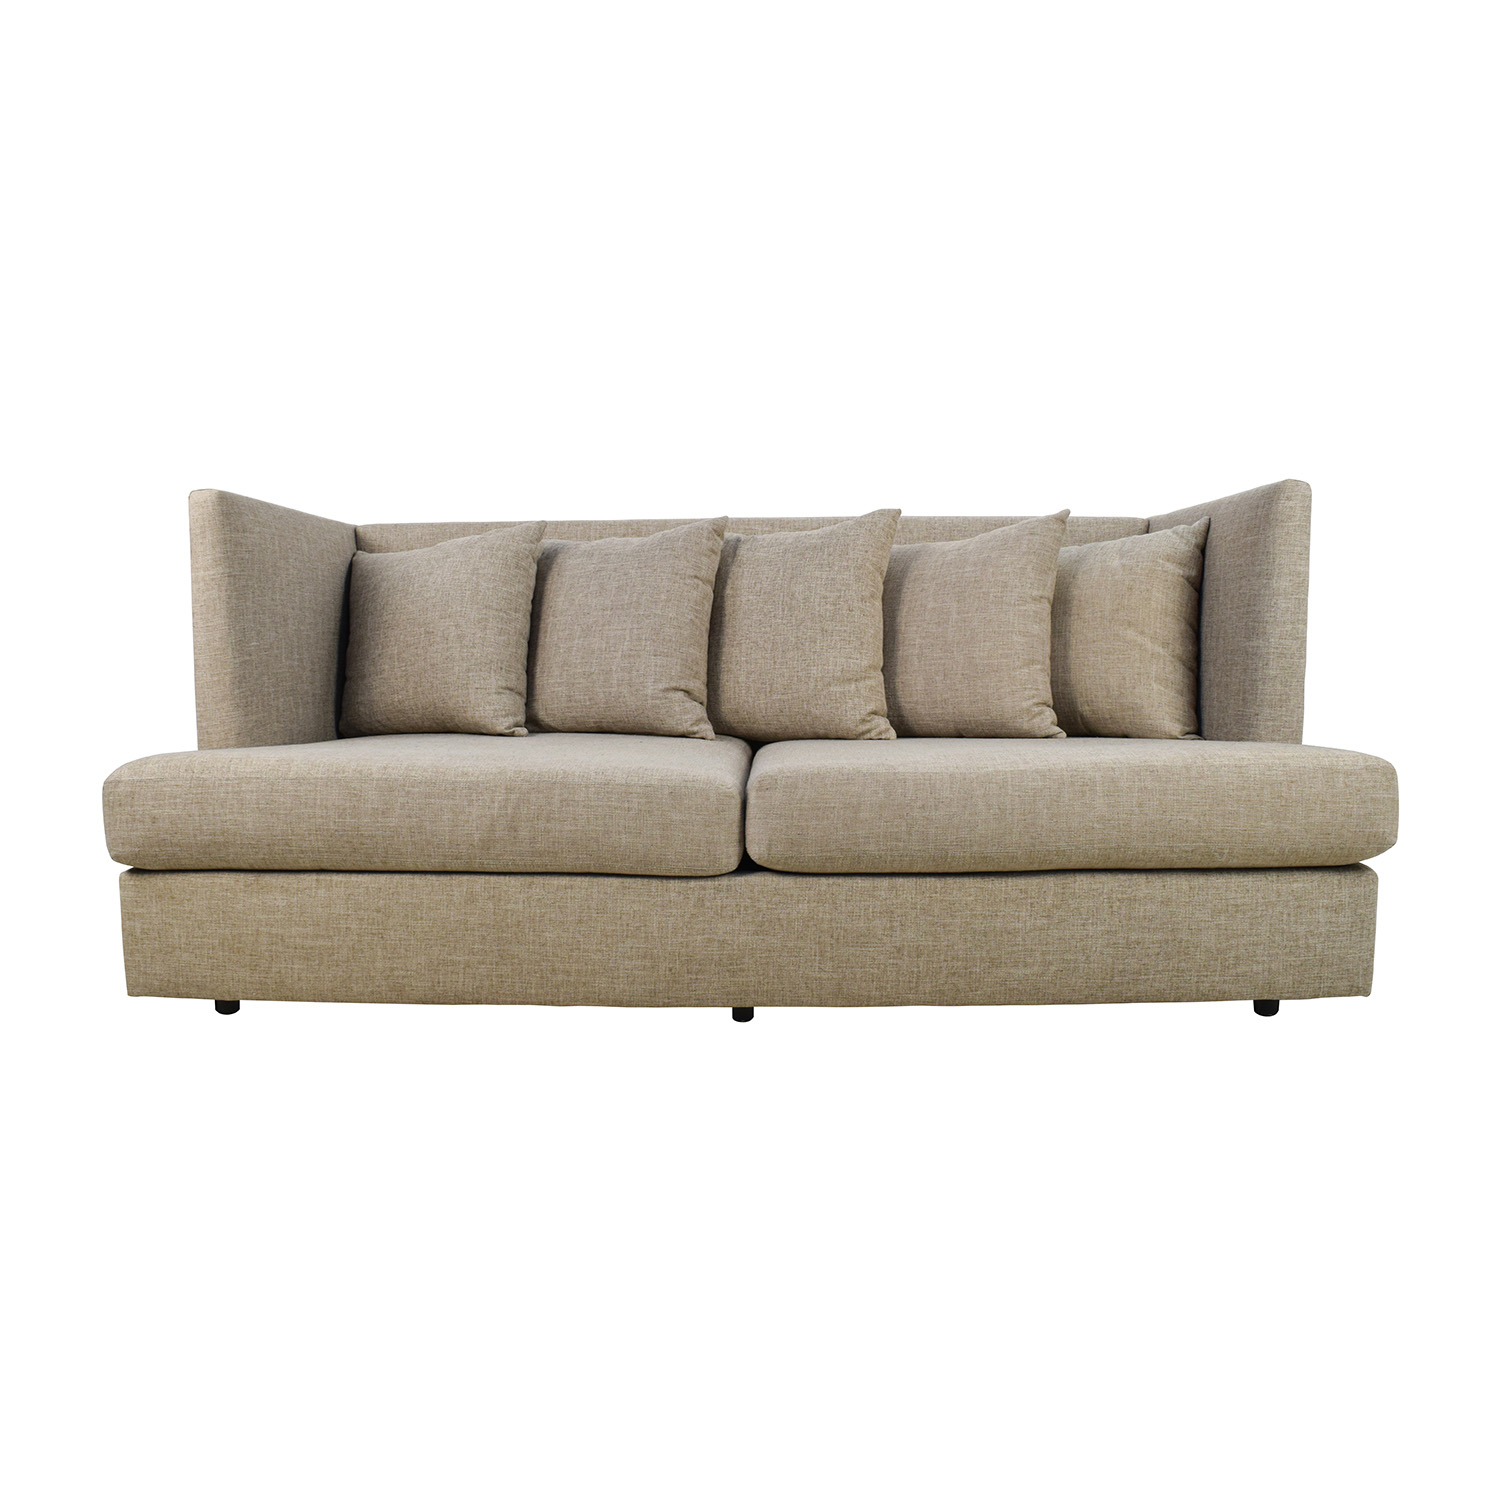 Crate & Barrel Shelter Beige Couch / Sofas